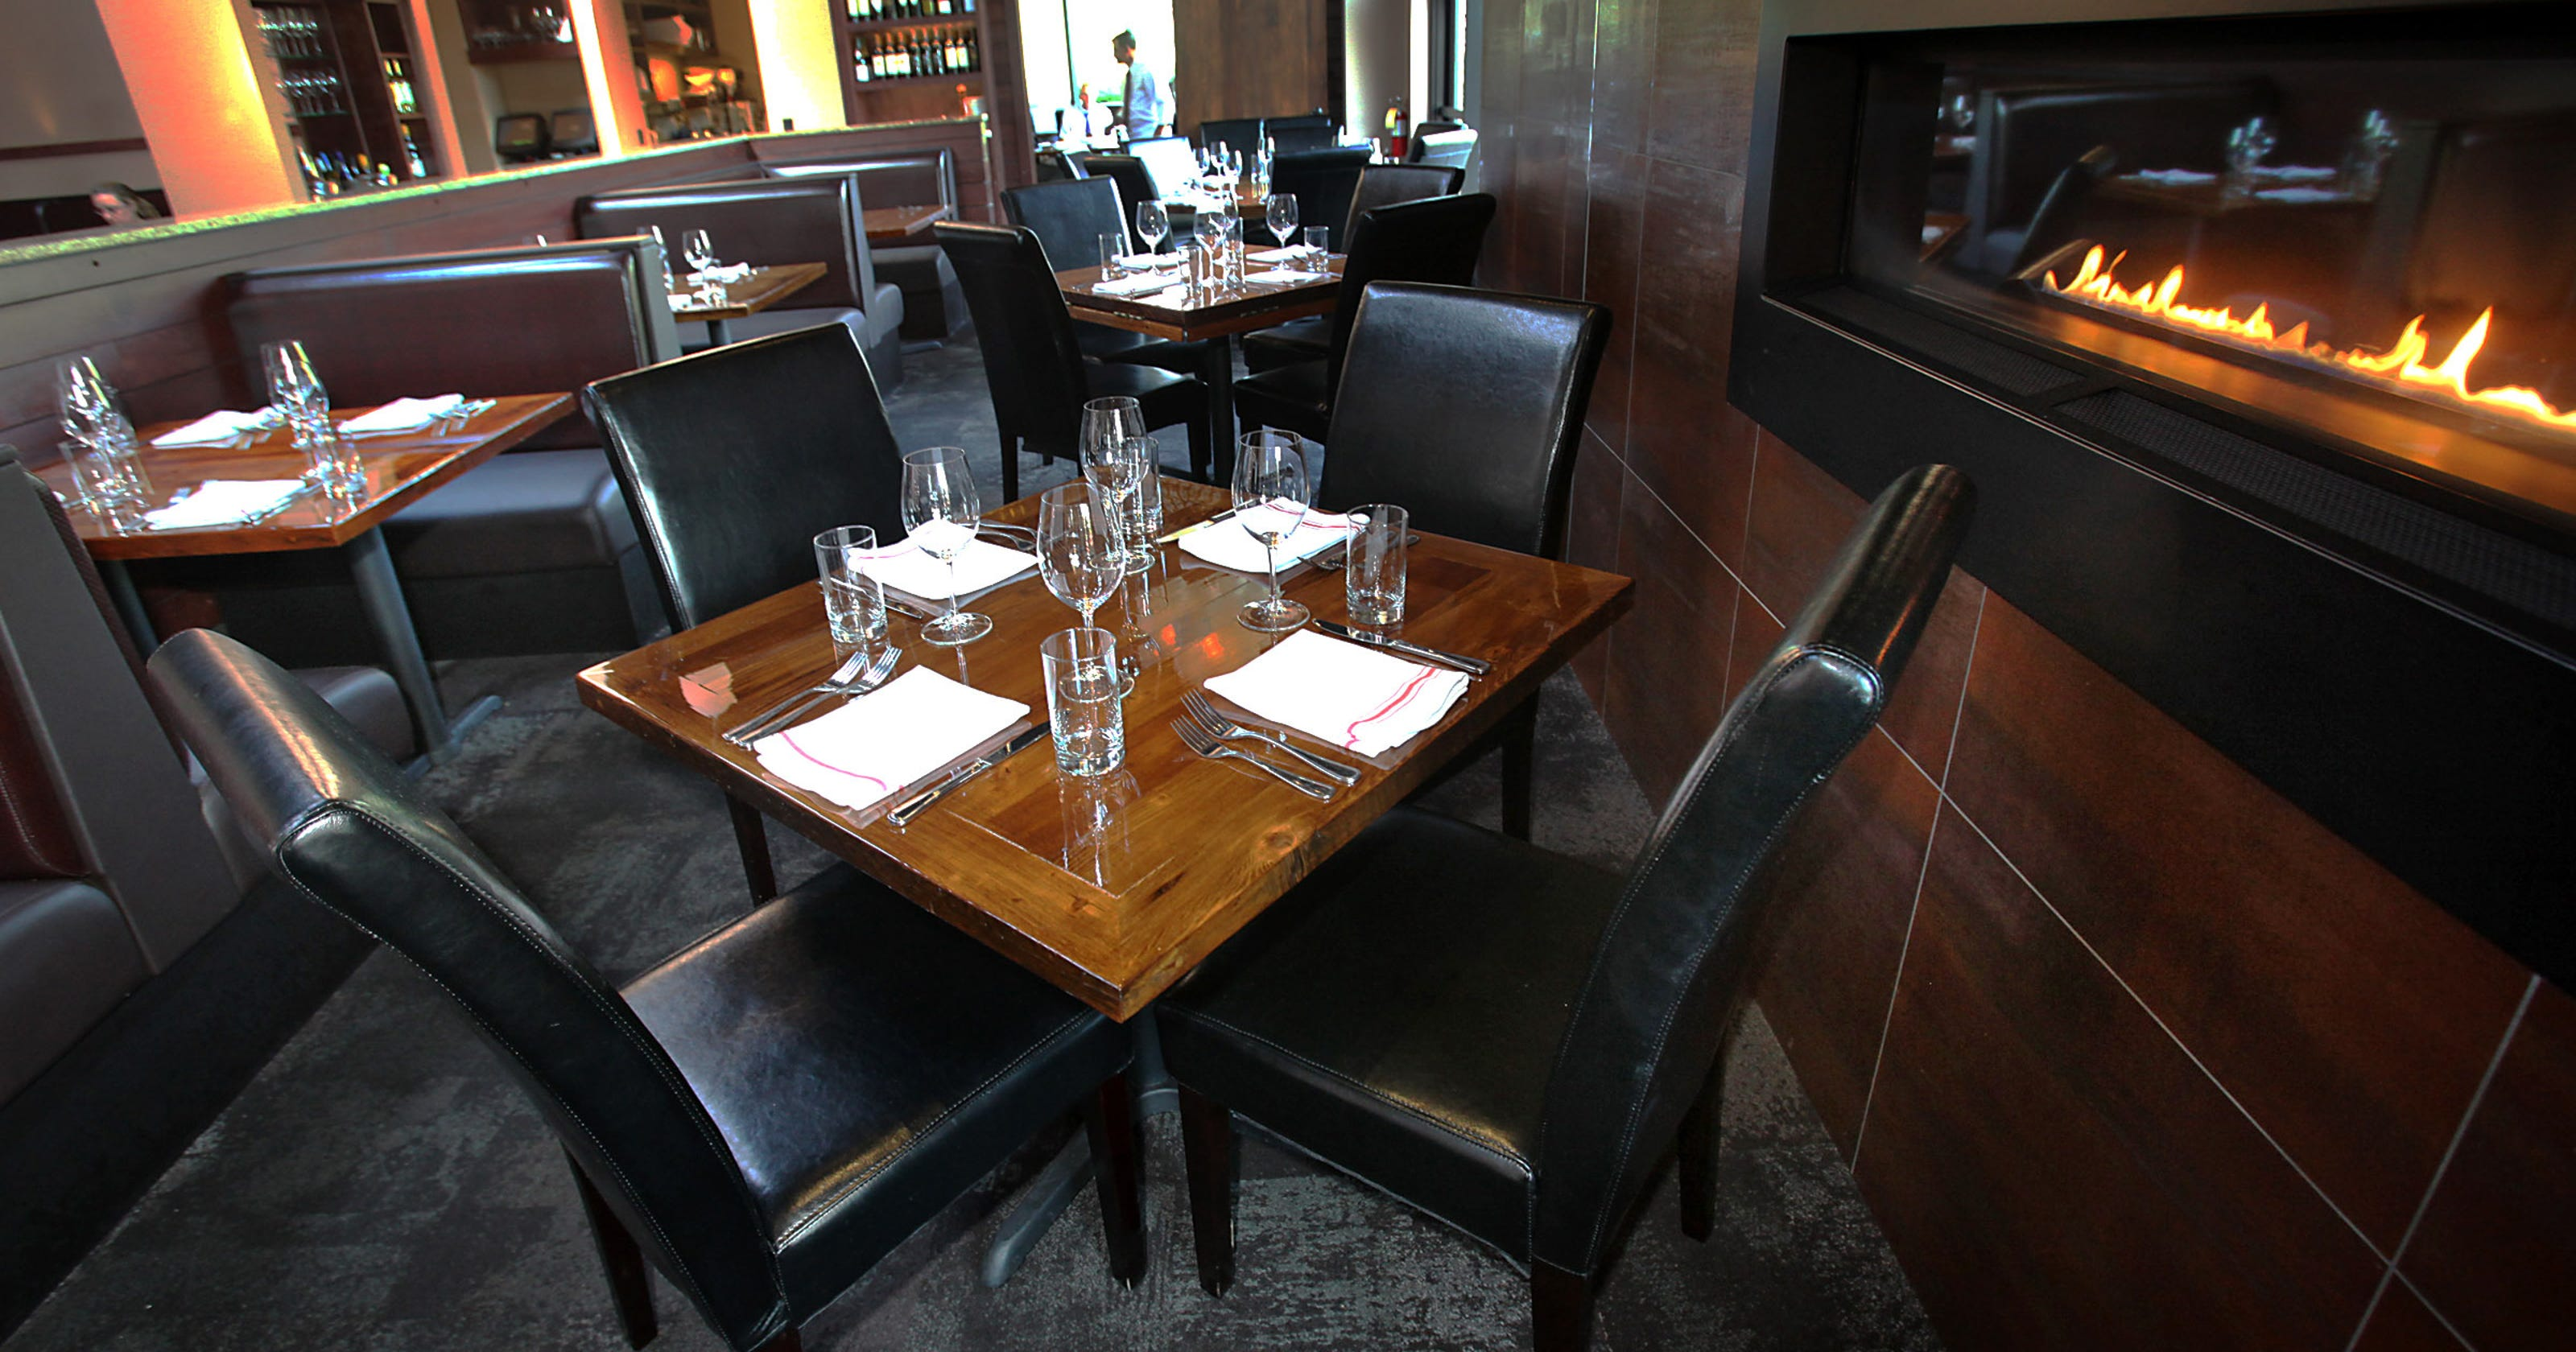 Indy Restaurants For Fireside Dining - Farm to table restaurants indianapolis